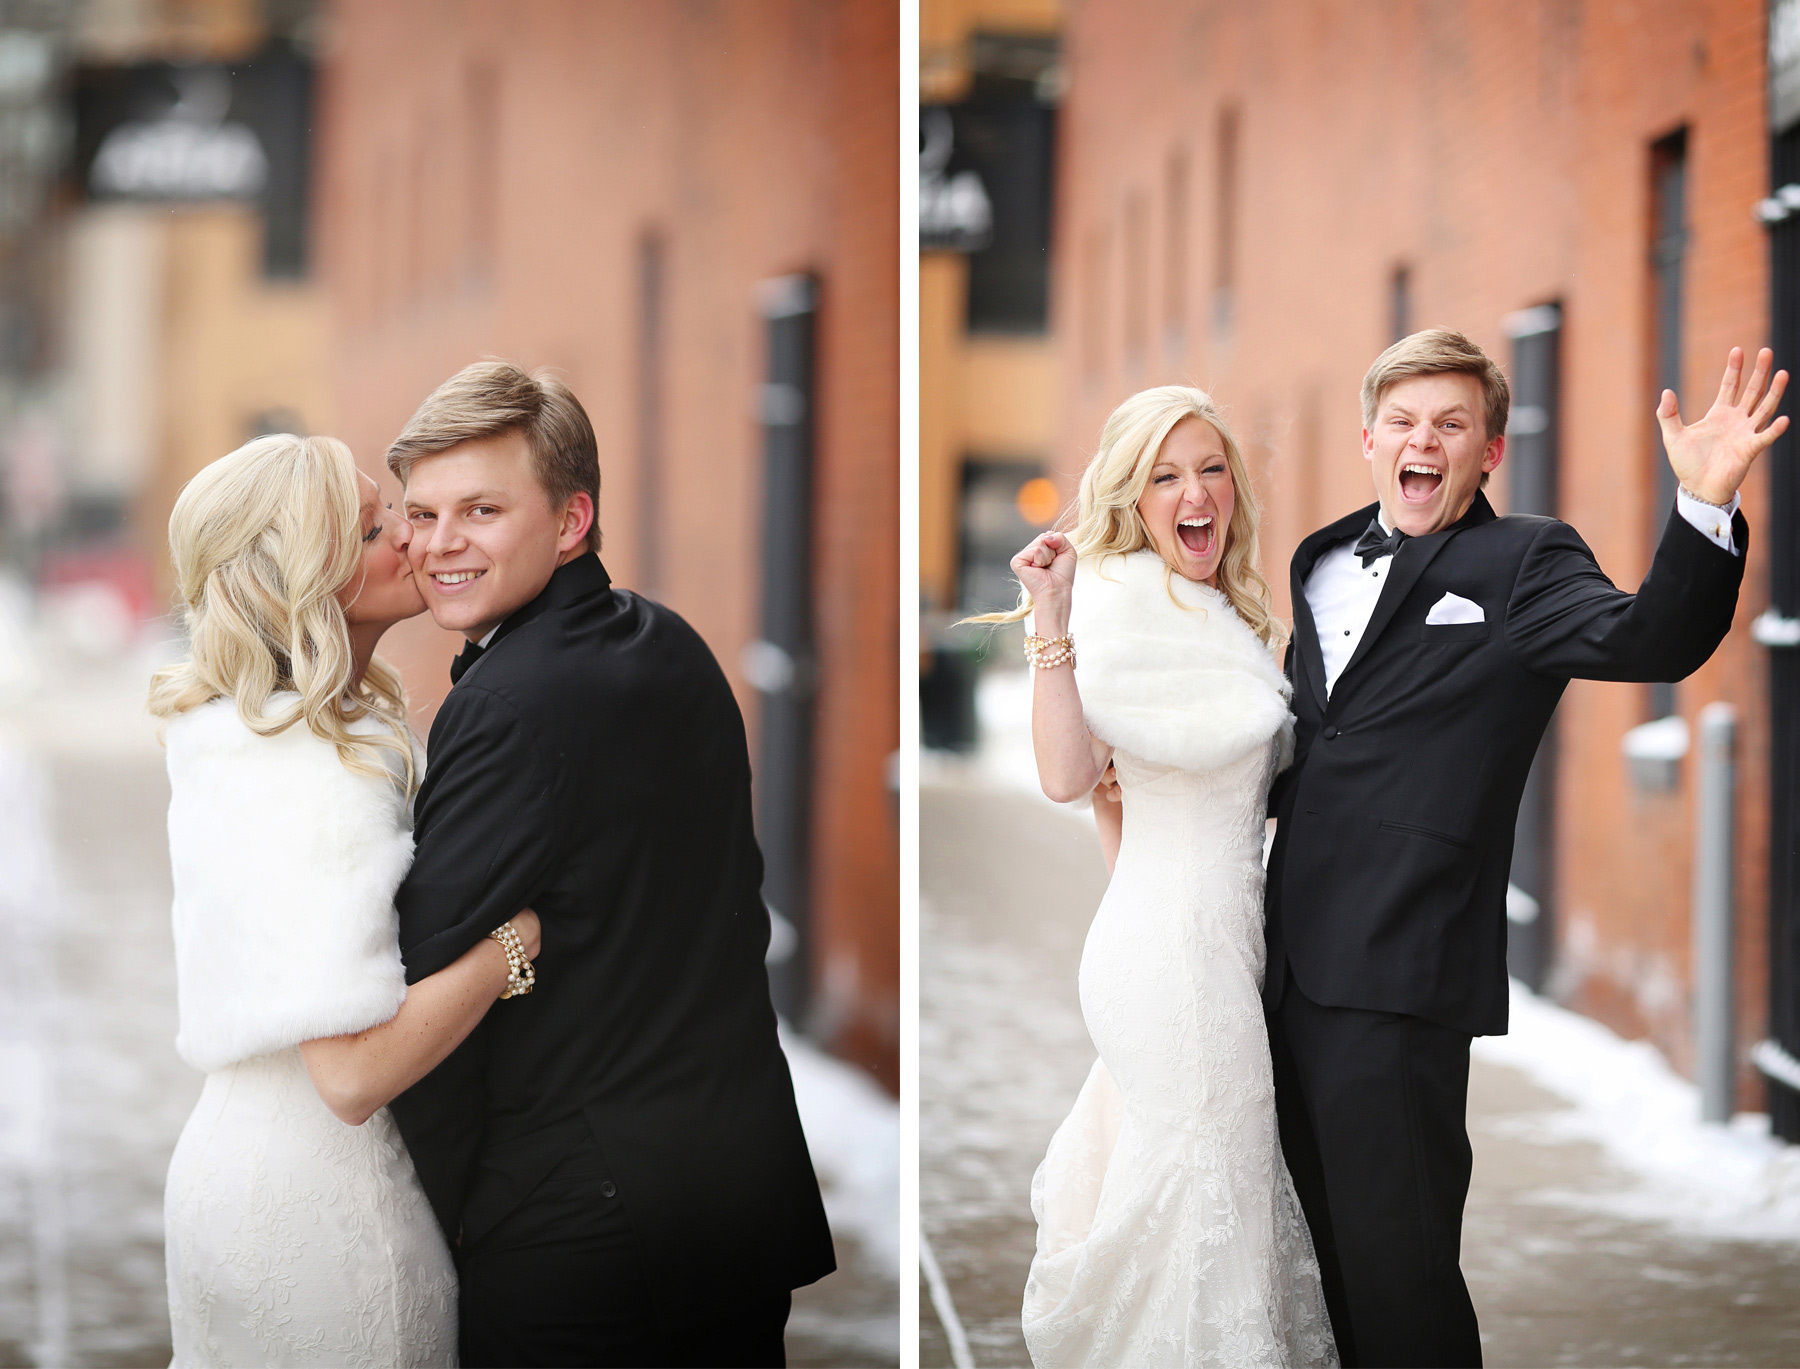 05-Minneapolis-Minnesota-Wedding-Photography-by-Vick-Photography-Downtown-First-Look-Caroline-and-J.jpg